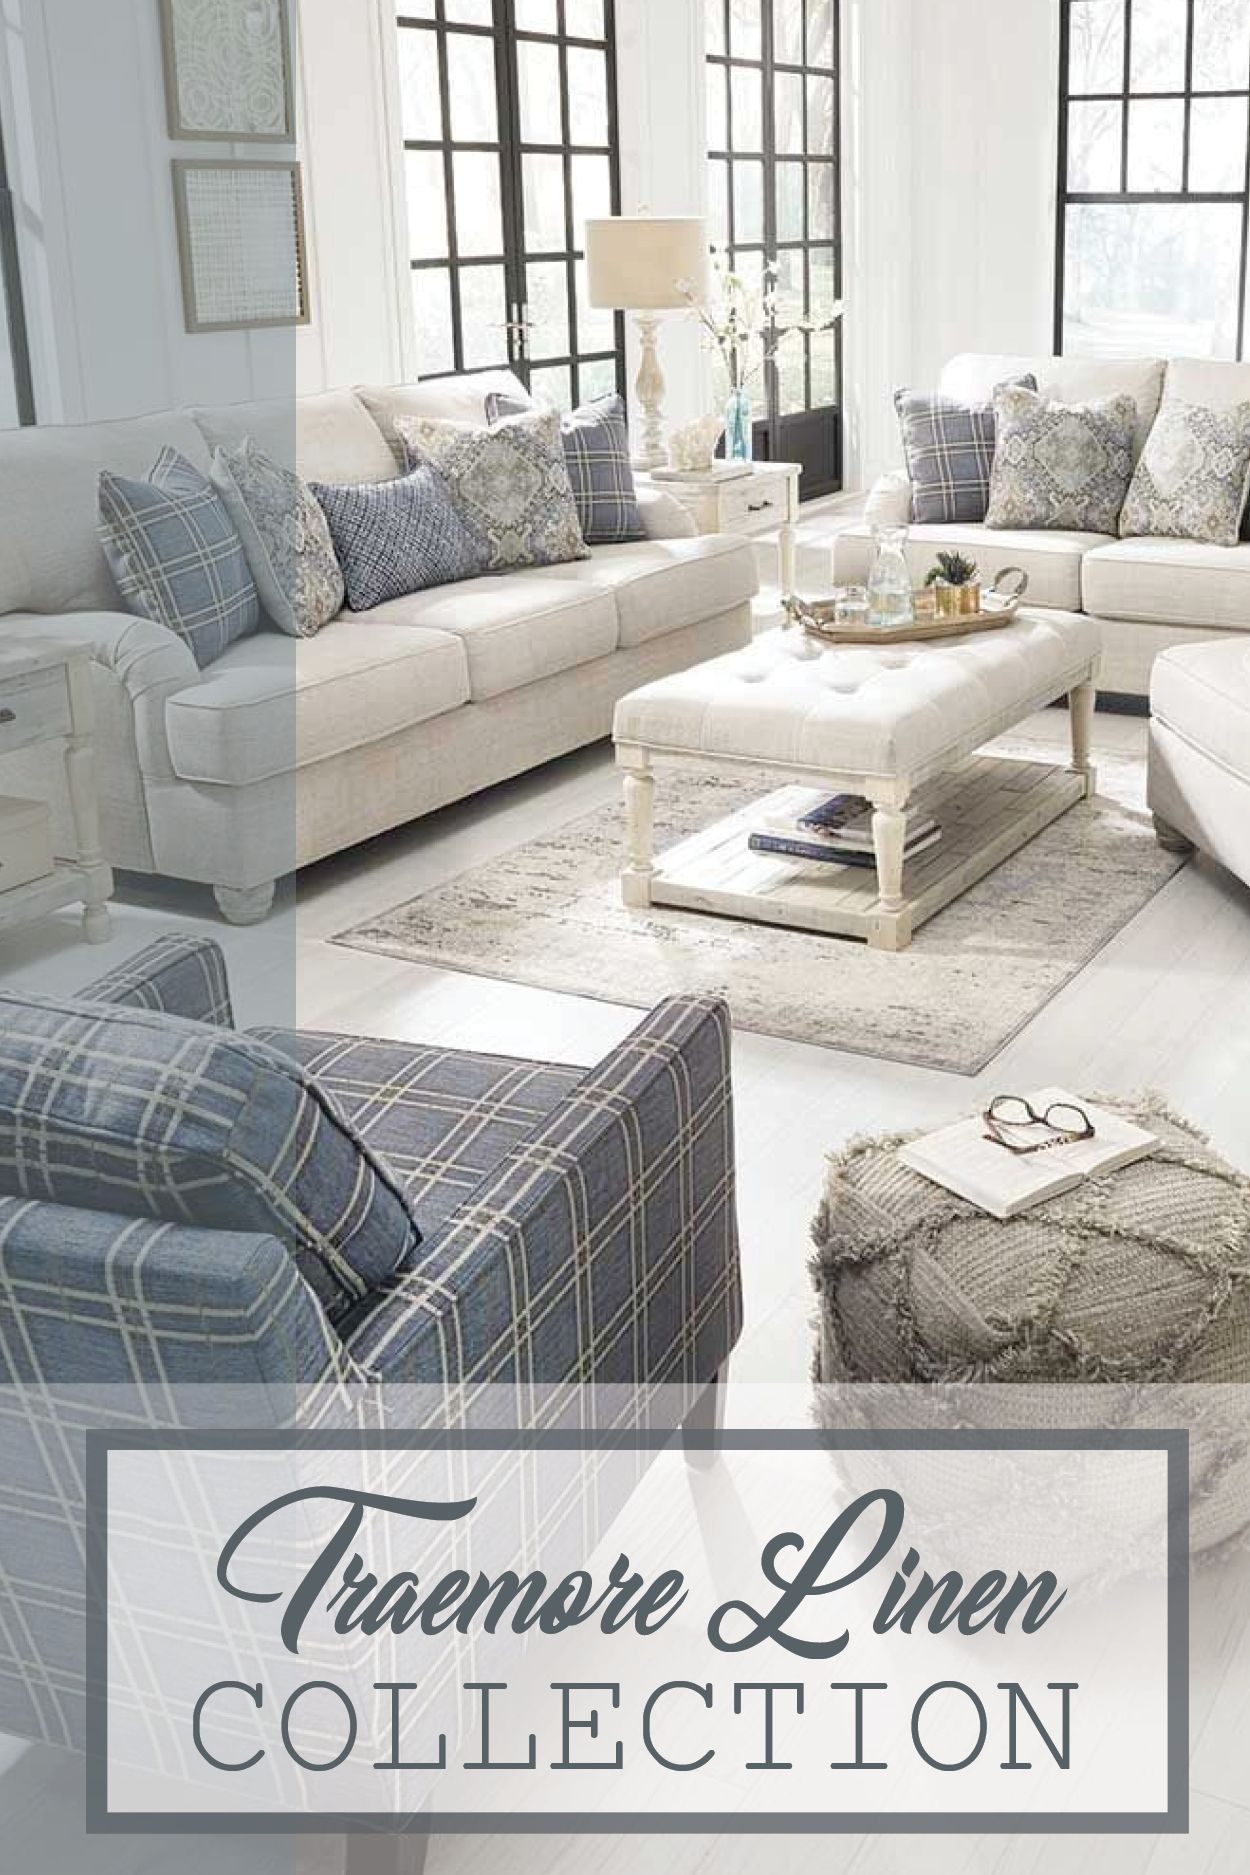 The traemore linen upholstery collection from benchcraft by ashley furniture offers a modern day farmhouse look with a relaxed laid back approach